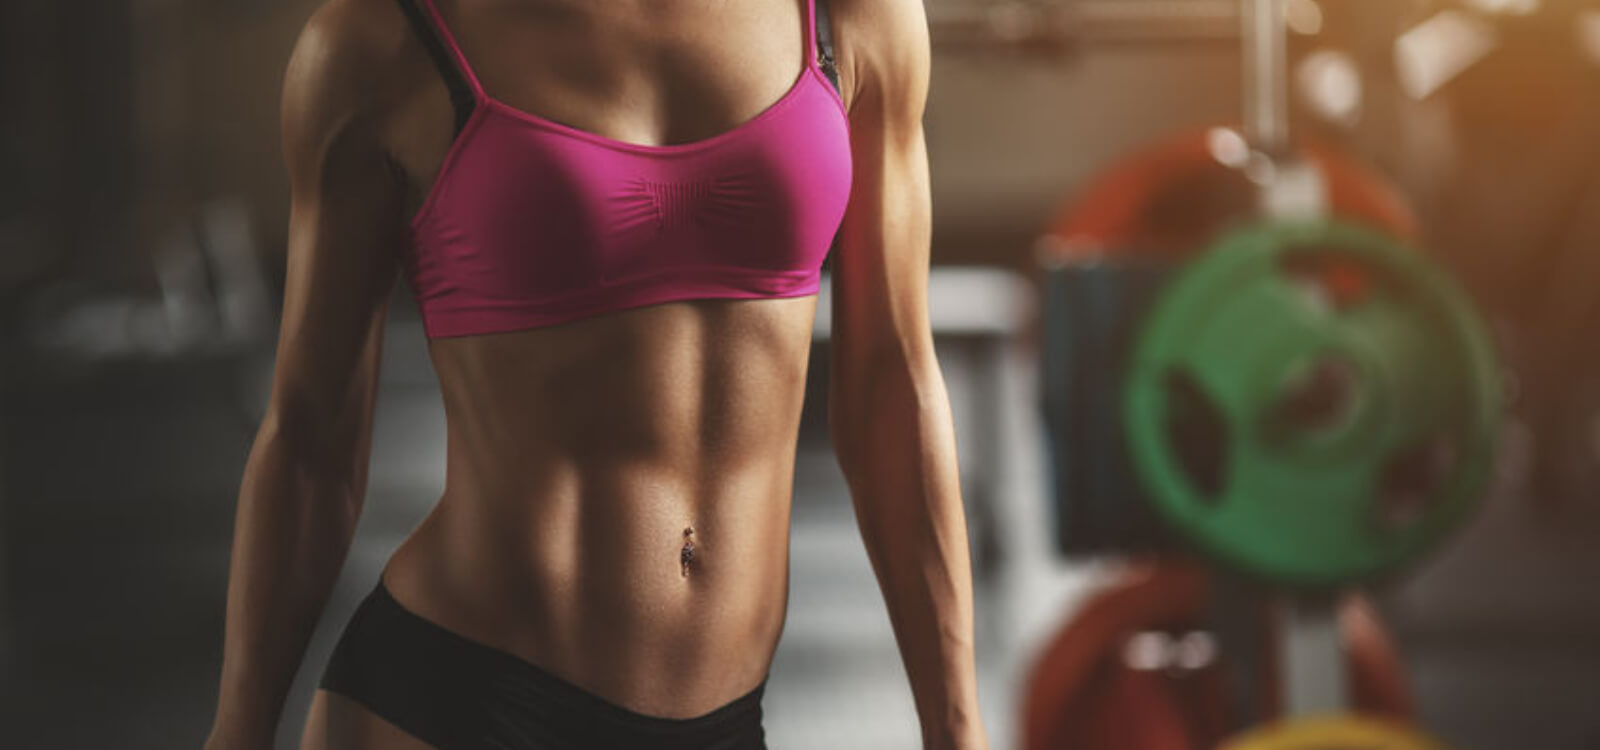 Lyle McDonald Answers: How Can Women Lose Stubborn Fat Faster?